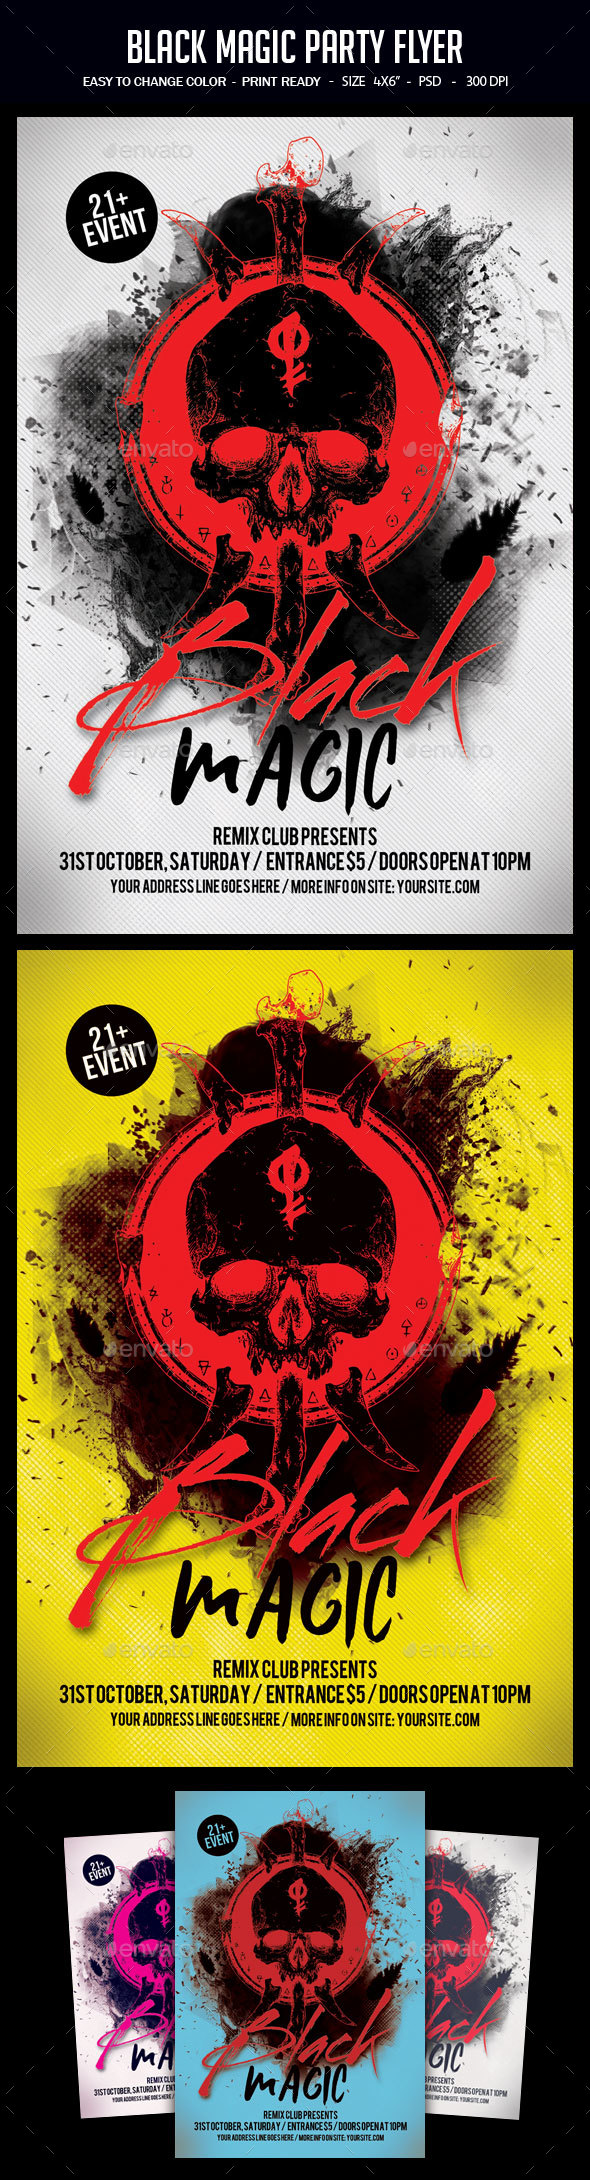 Black Magic Party Flyer - Clubs & Parties Events